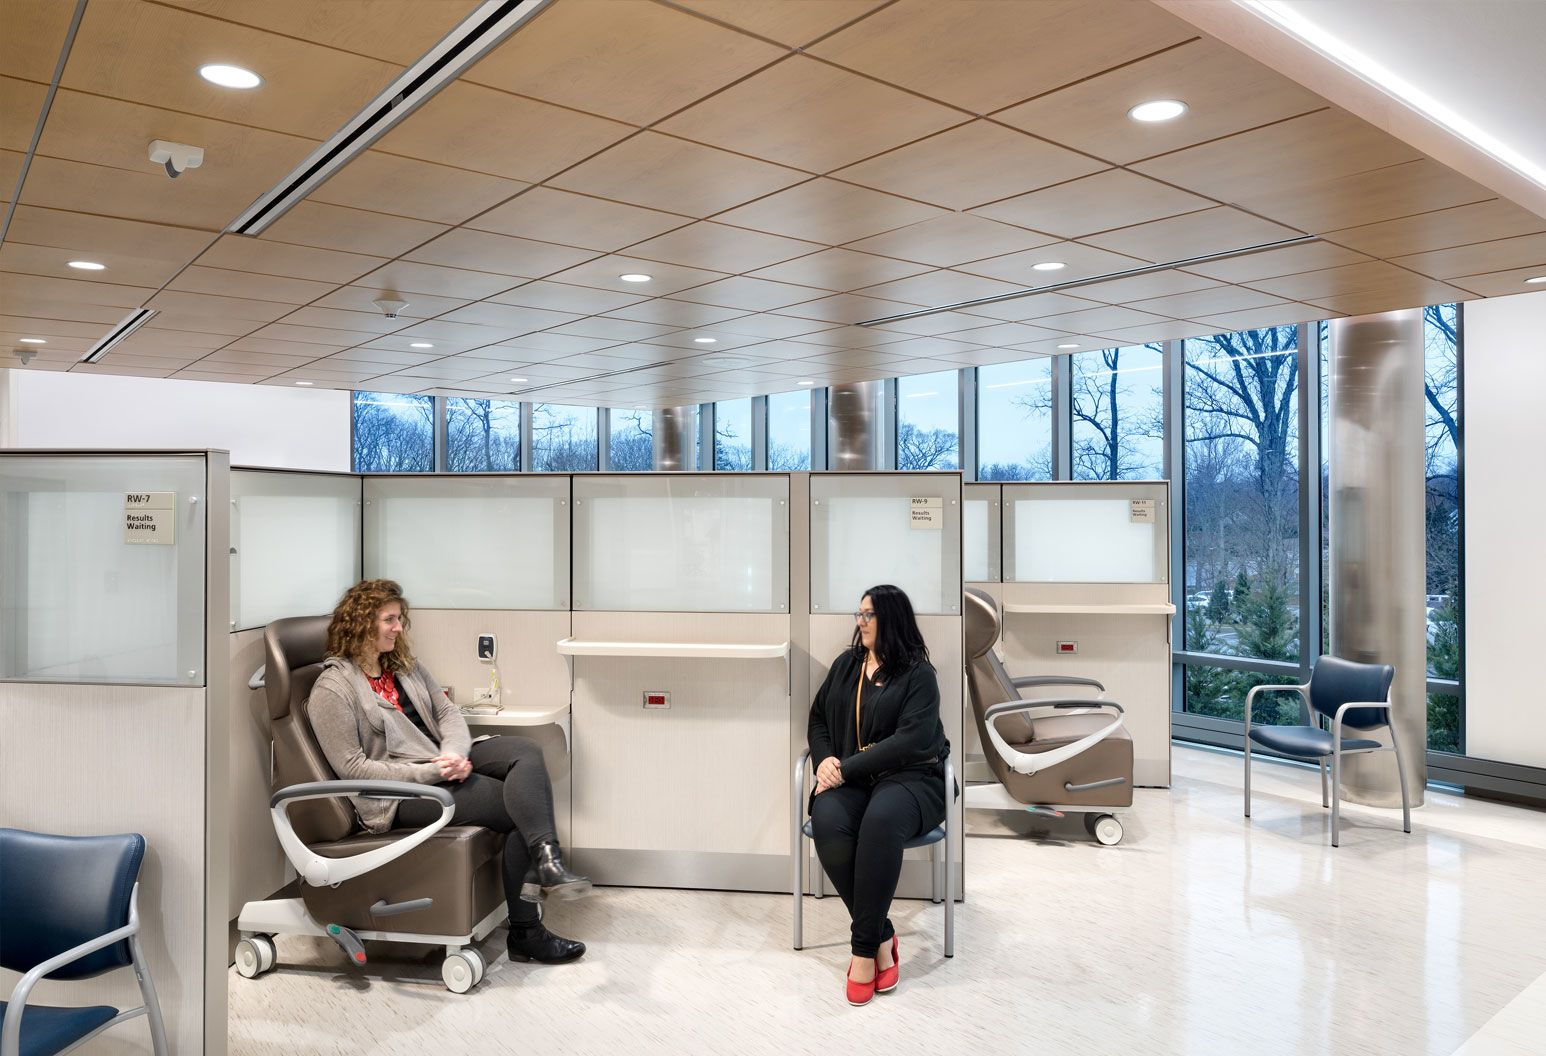 Two women sit in the ED; one is in a chair, and one is in an electric wheelchair.